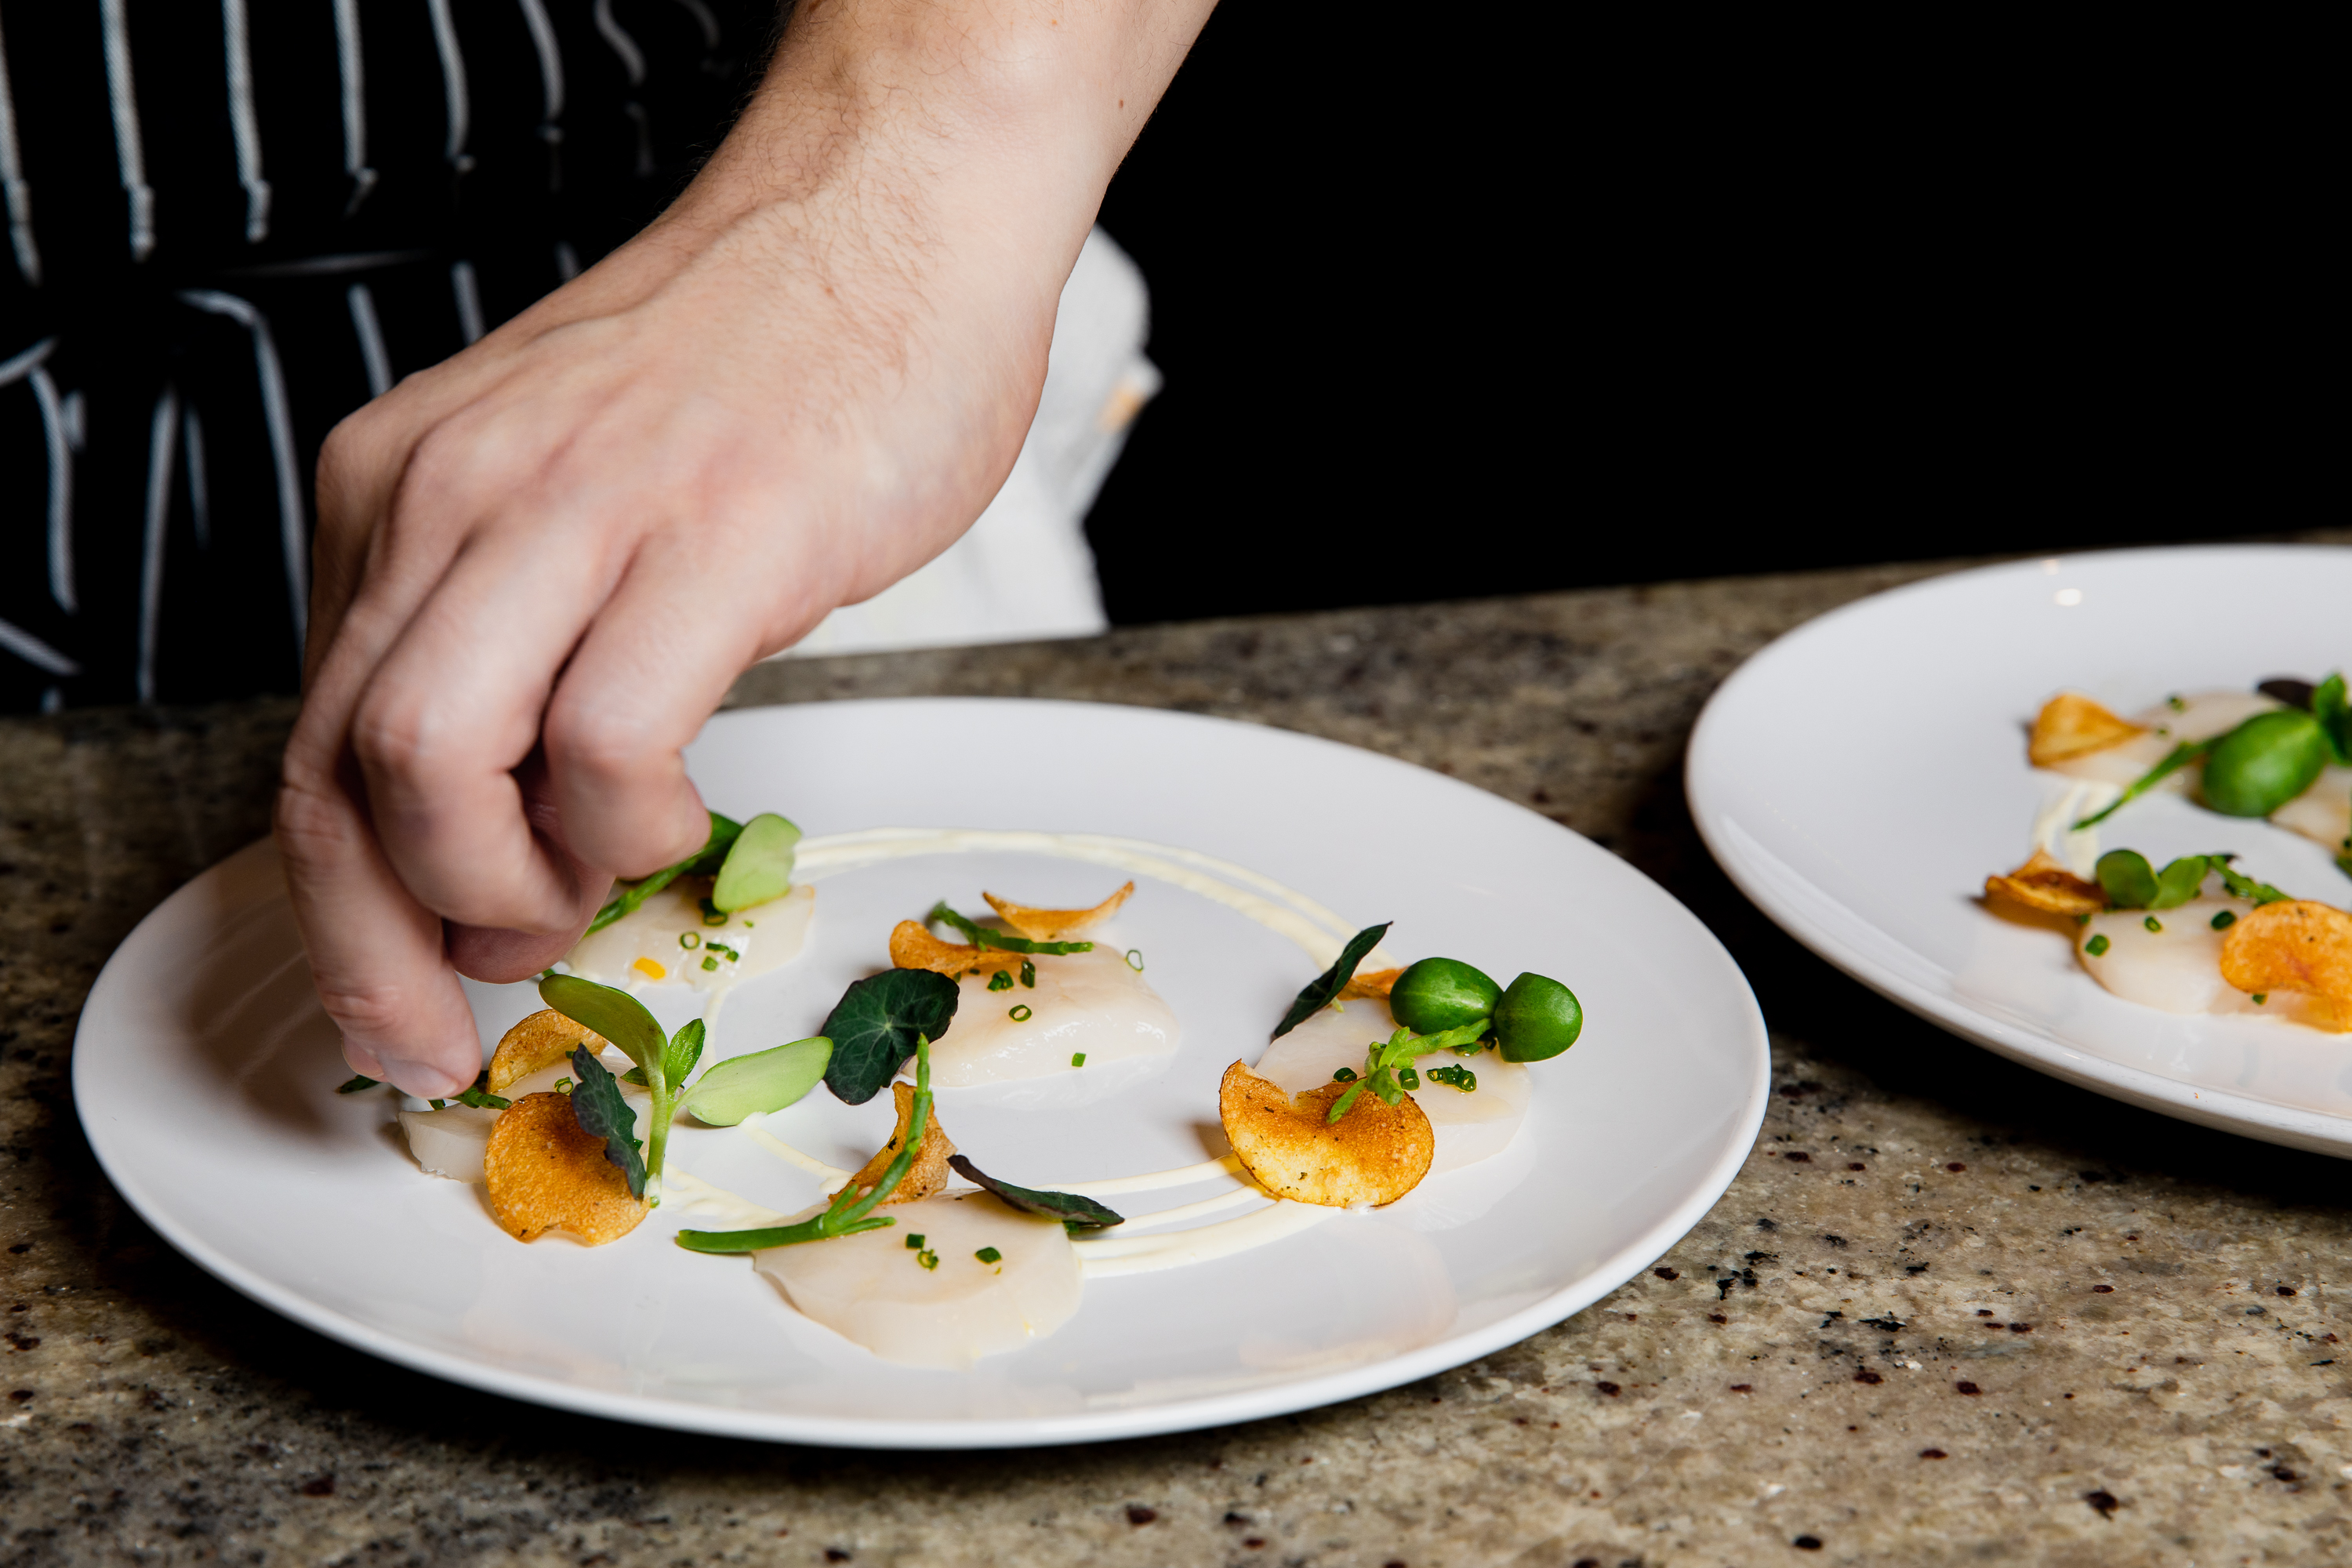 Someone plating a fine-dining dish of raw scallops with fried chips.